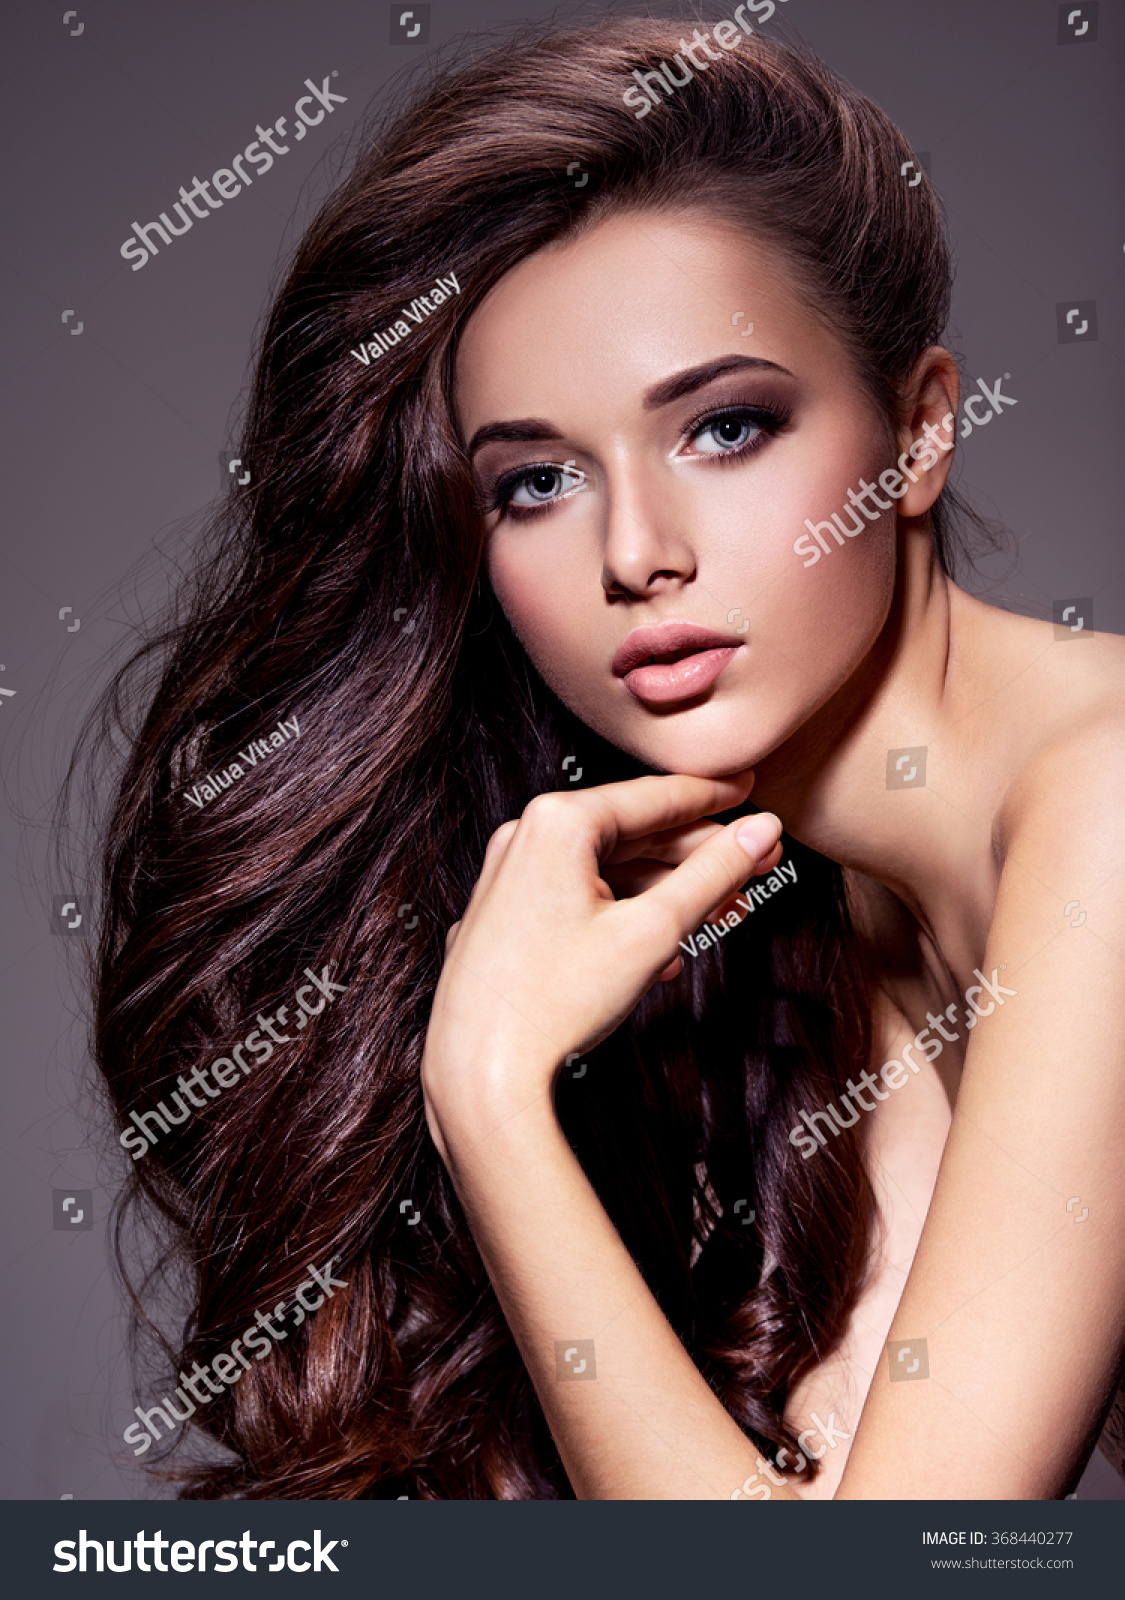 HD wallpapers hair editor photo